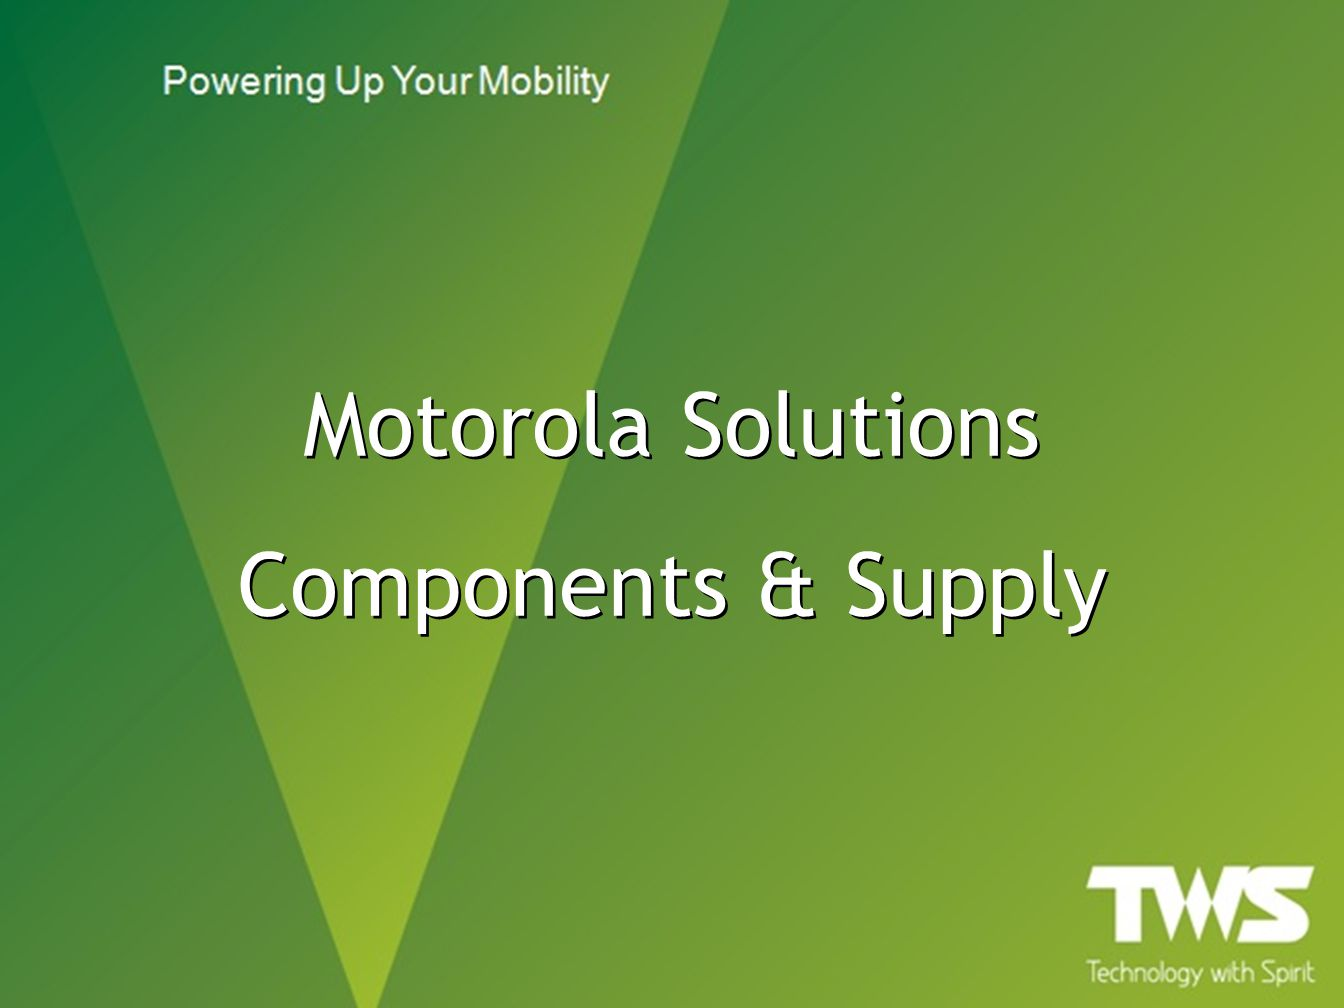 Motorola Solutions Components & Supply